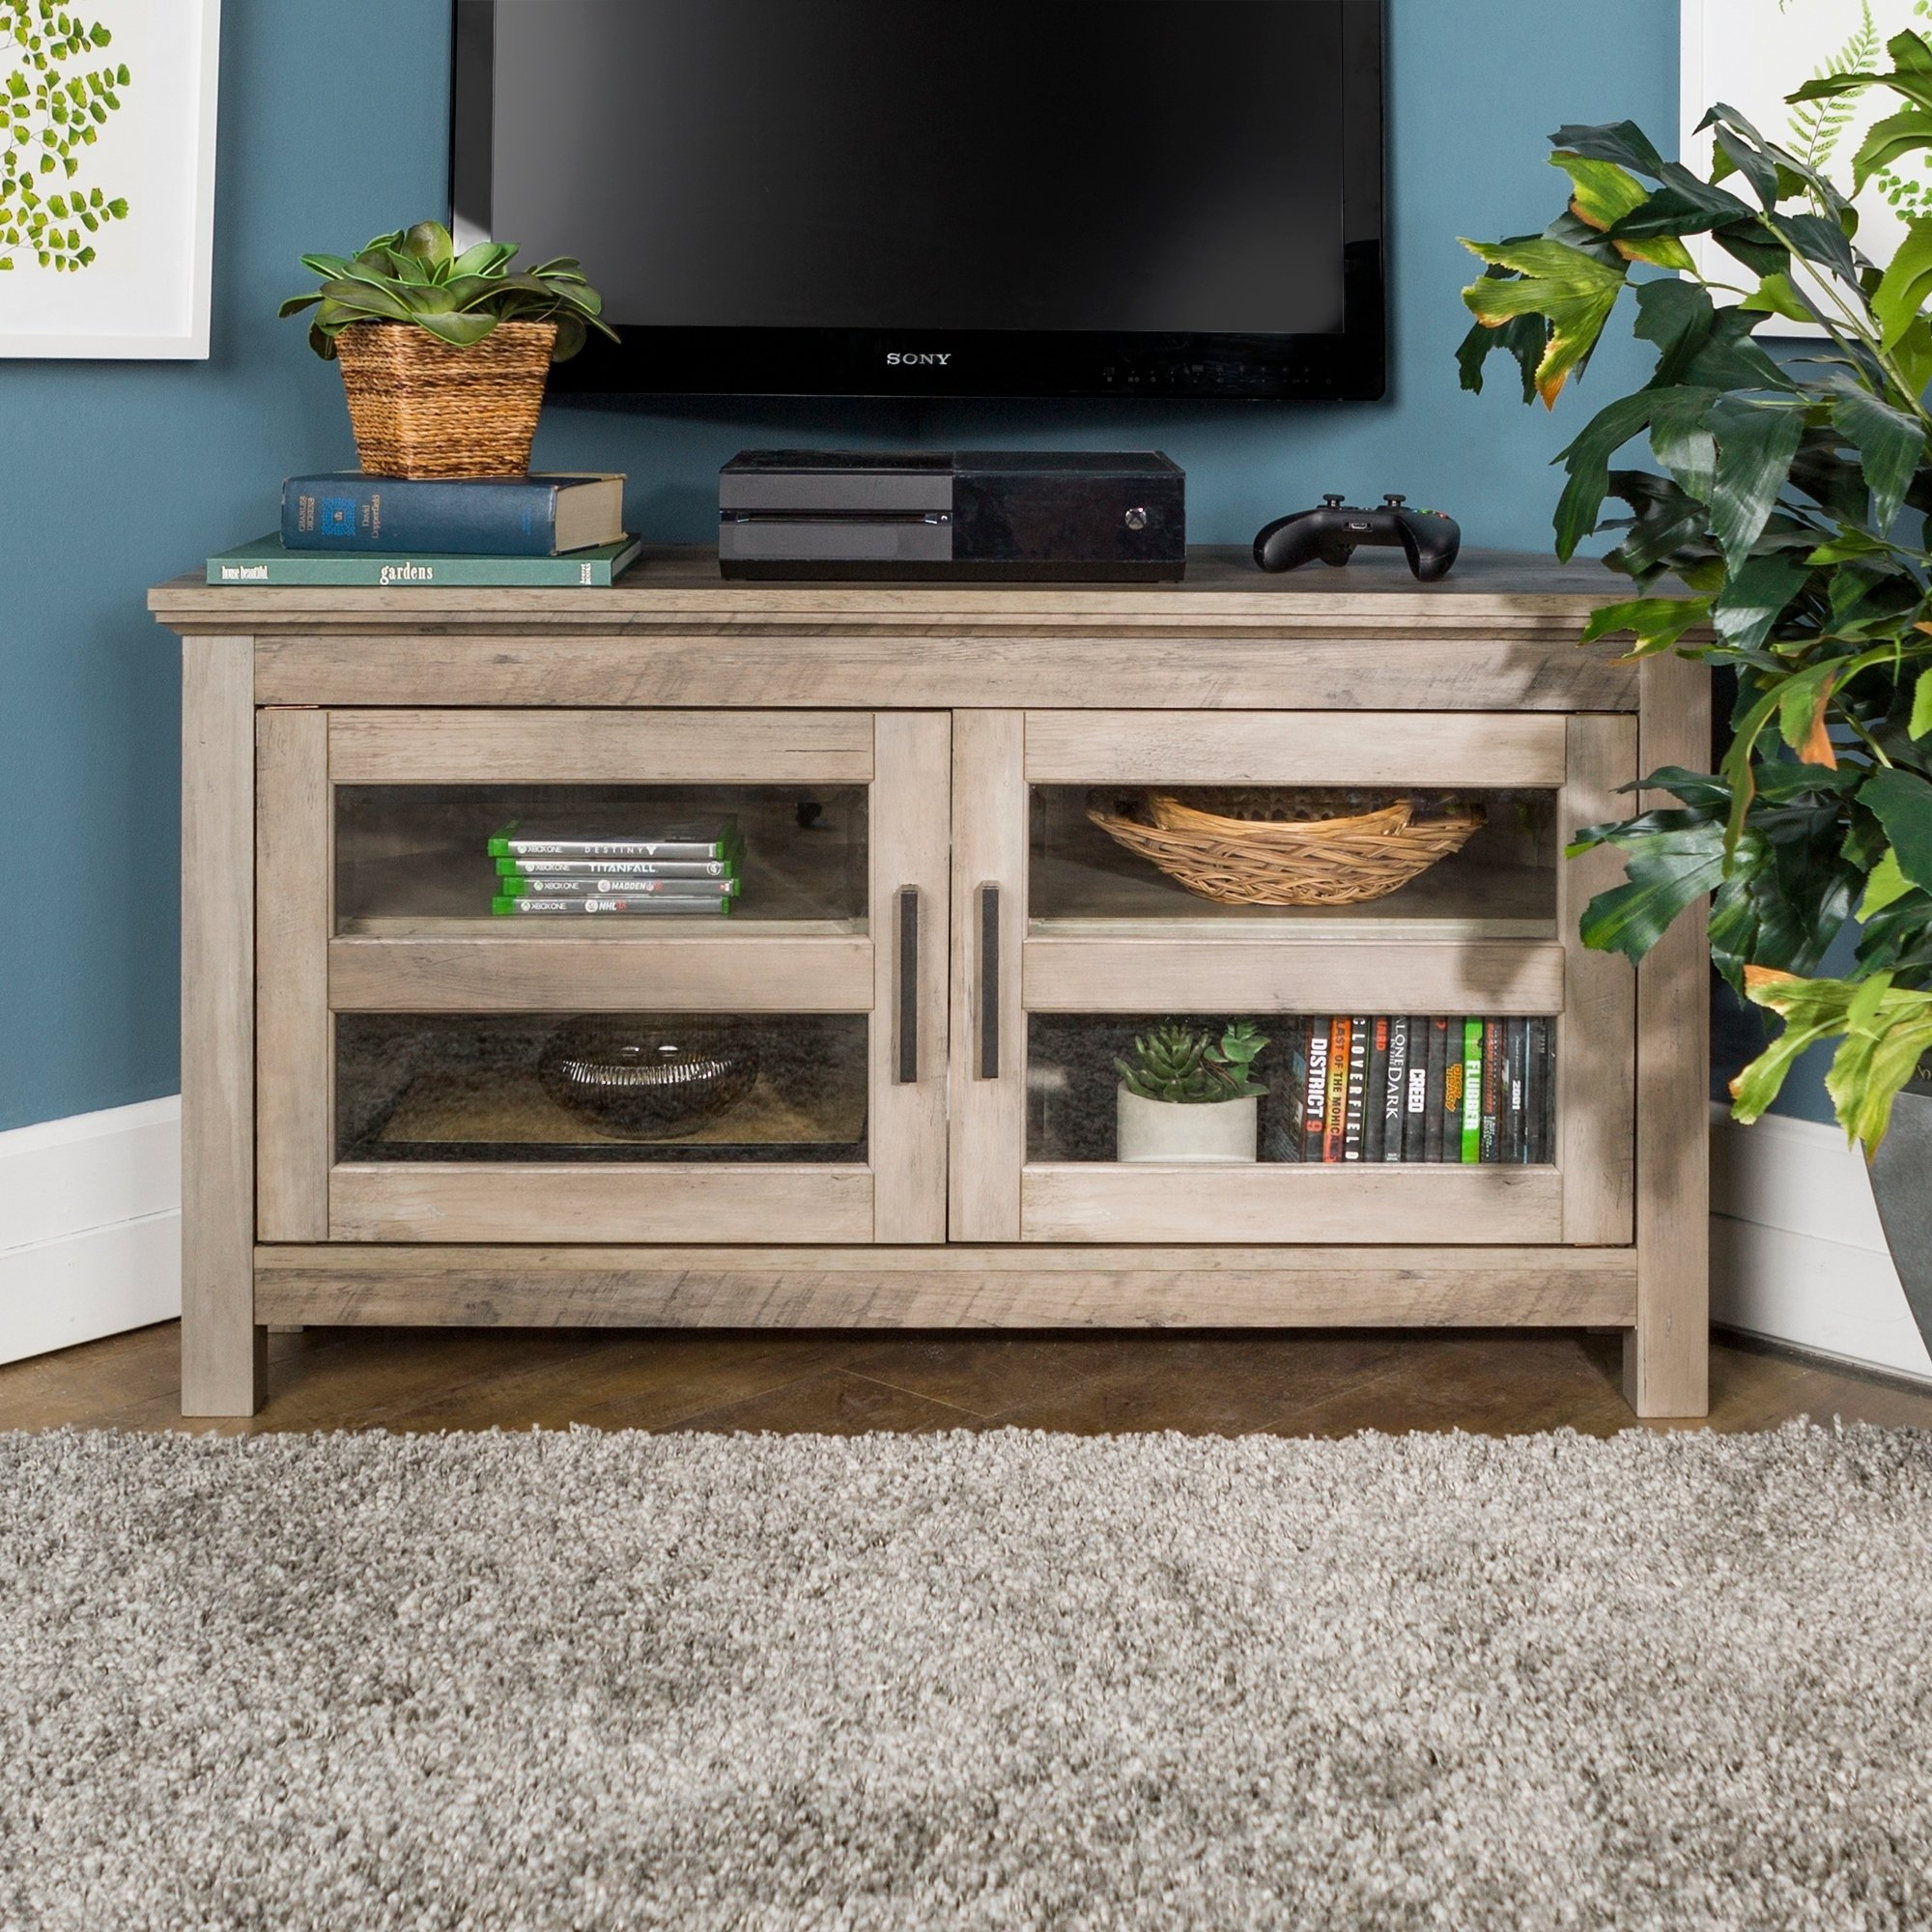 Buy Grey, 42 - 60 Inches Tv Stands & Entertainment Centers Online At within Rowan 64 Inch Tv Stands (Image 12 of 30)